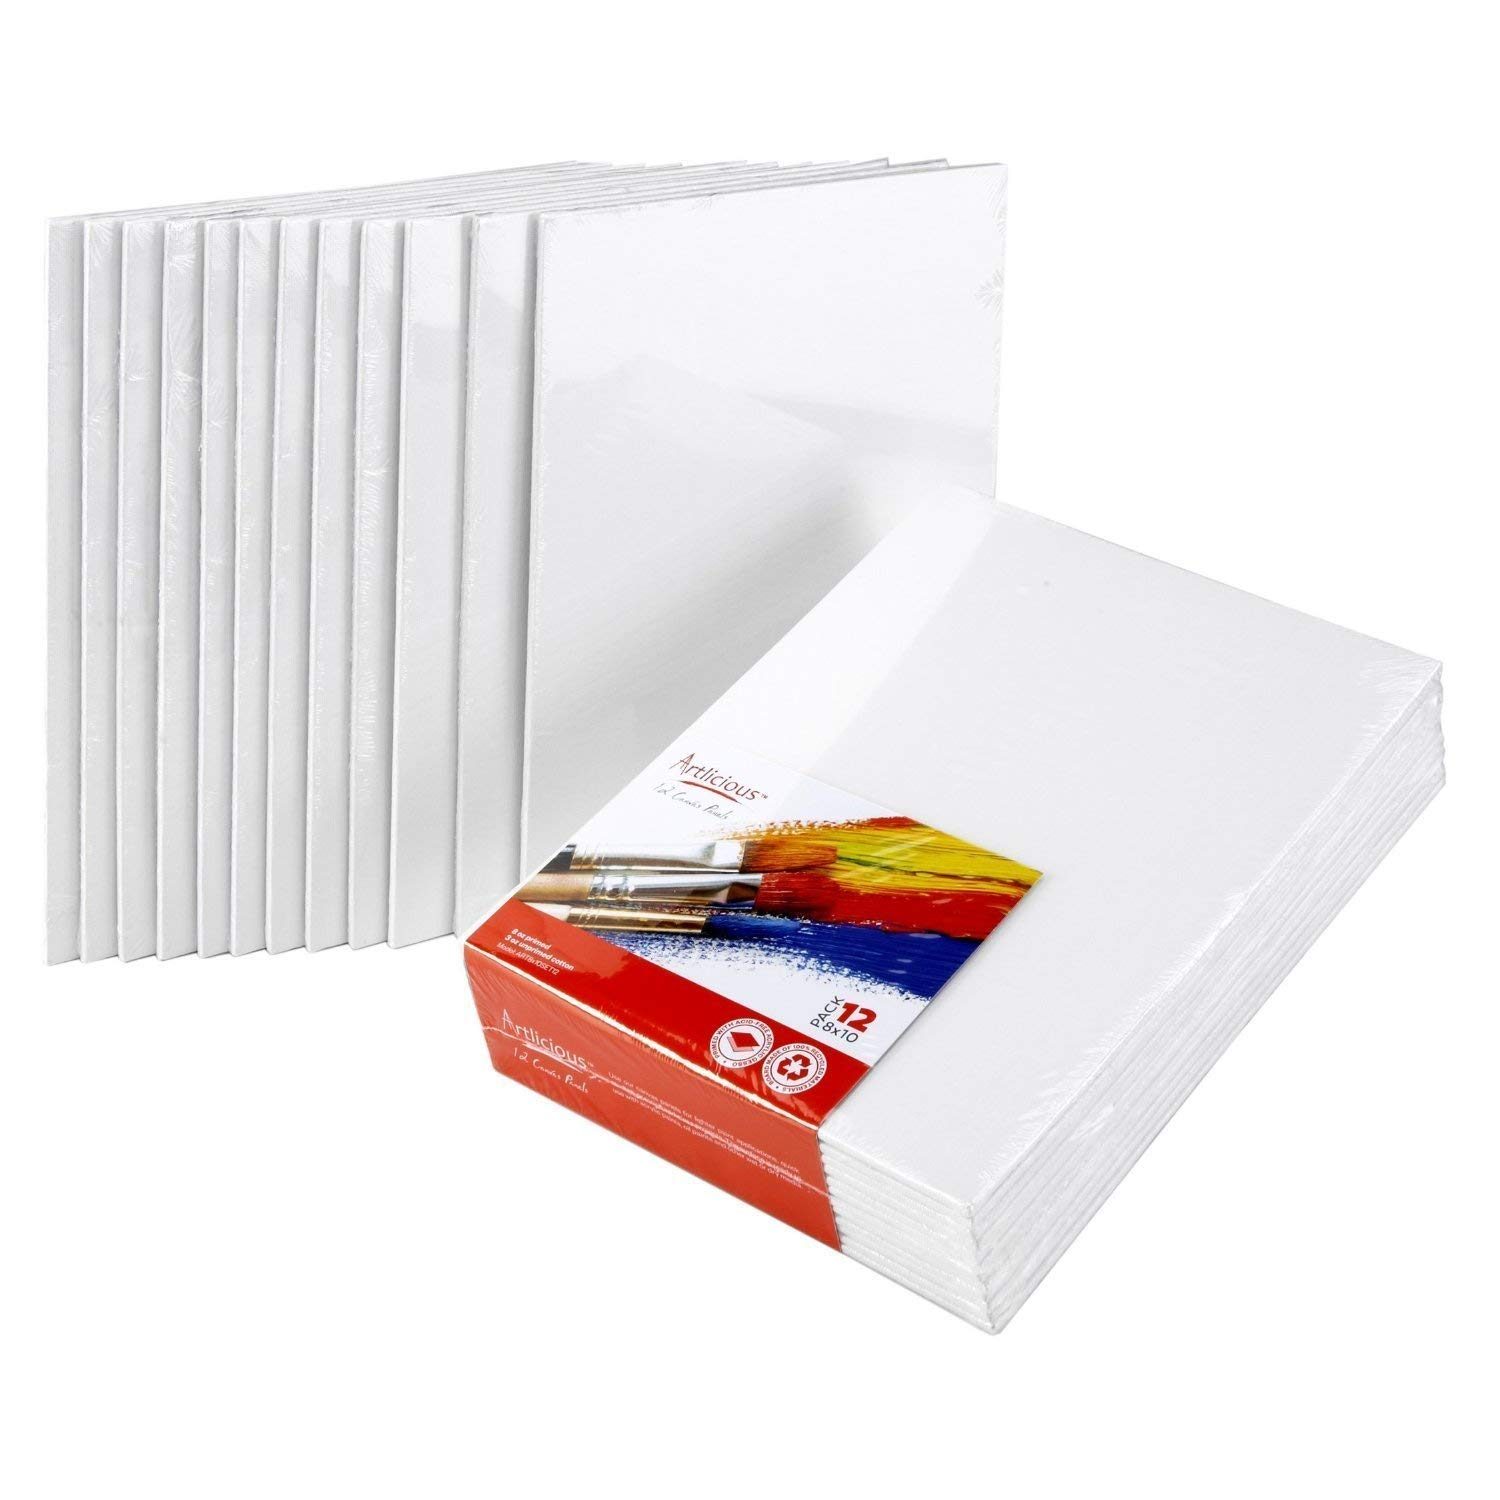 Artlicious Canvas Panels 48 Pack - 8''X10'' Super Value Pack- Artist Canvas Boards for Painting